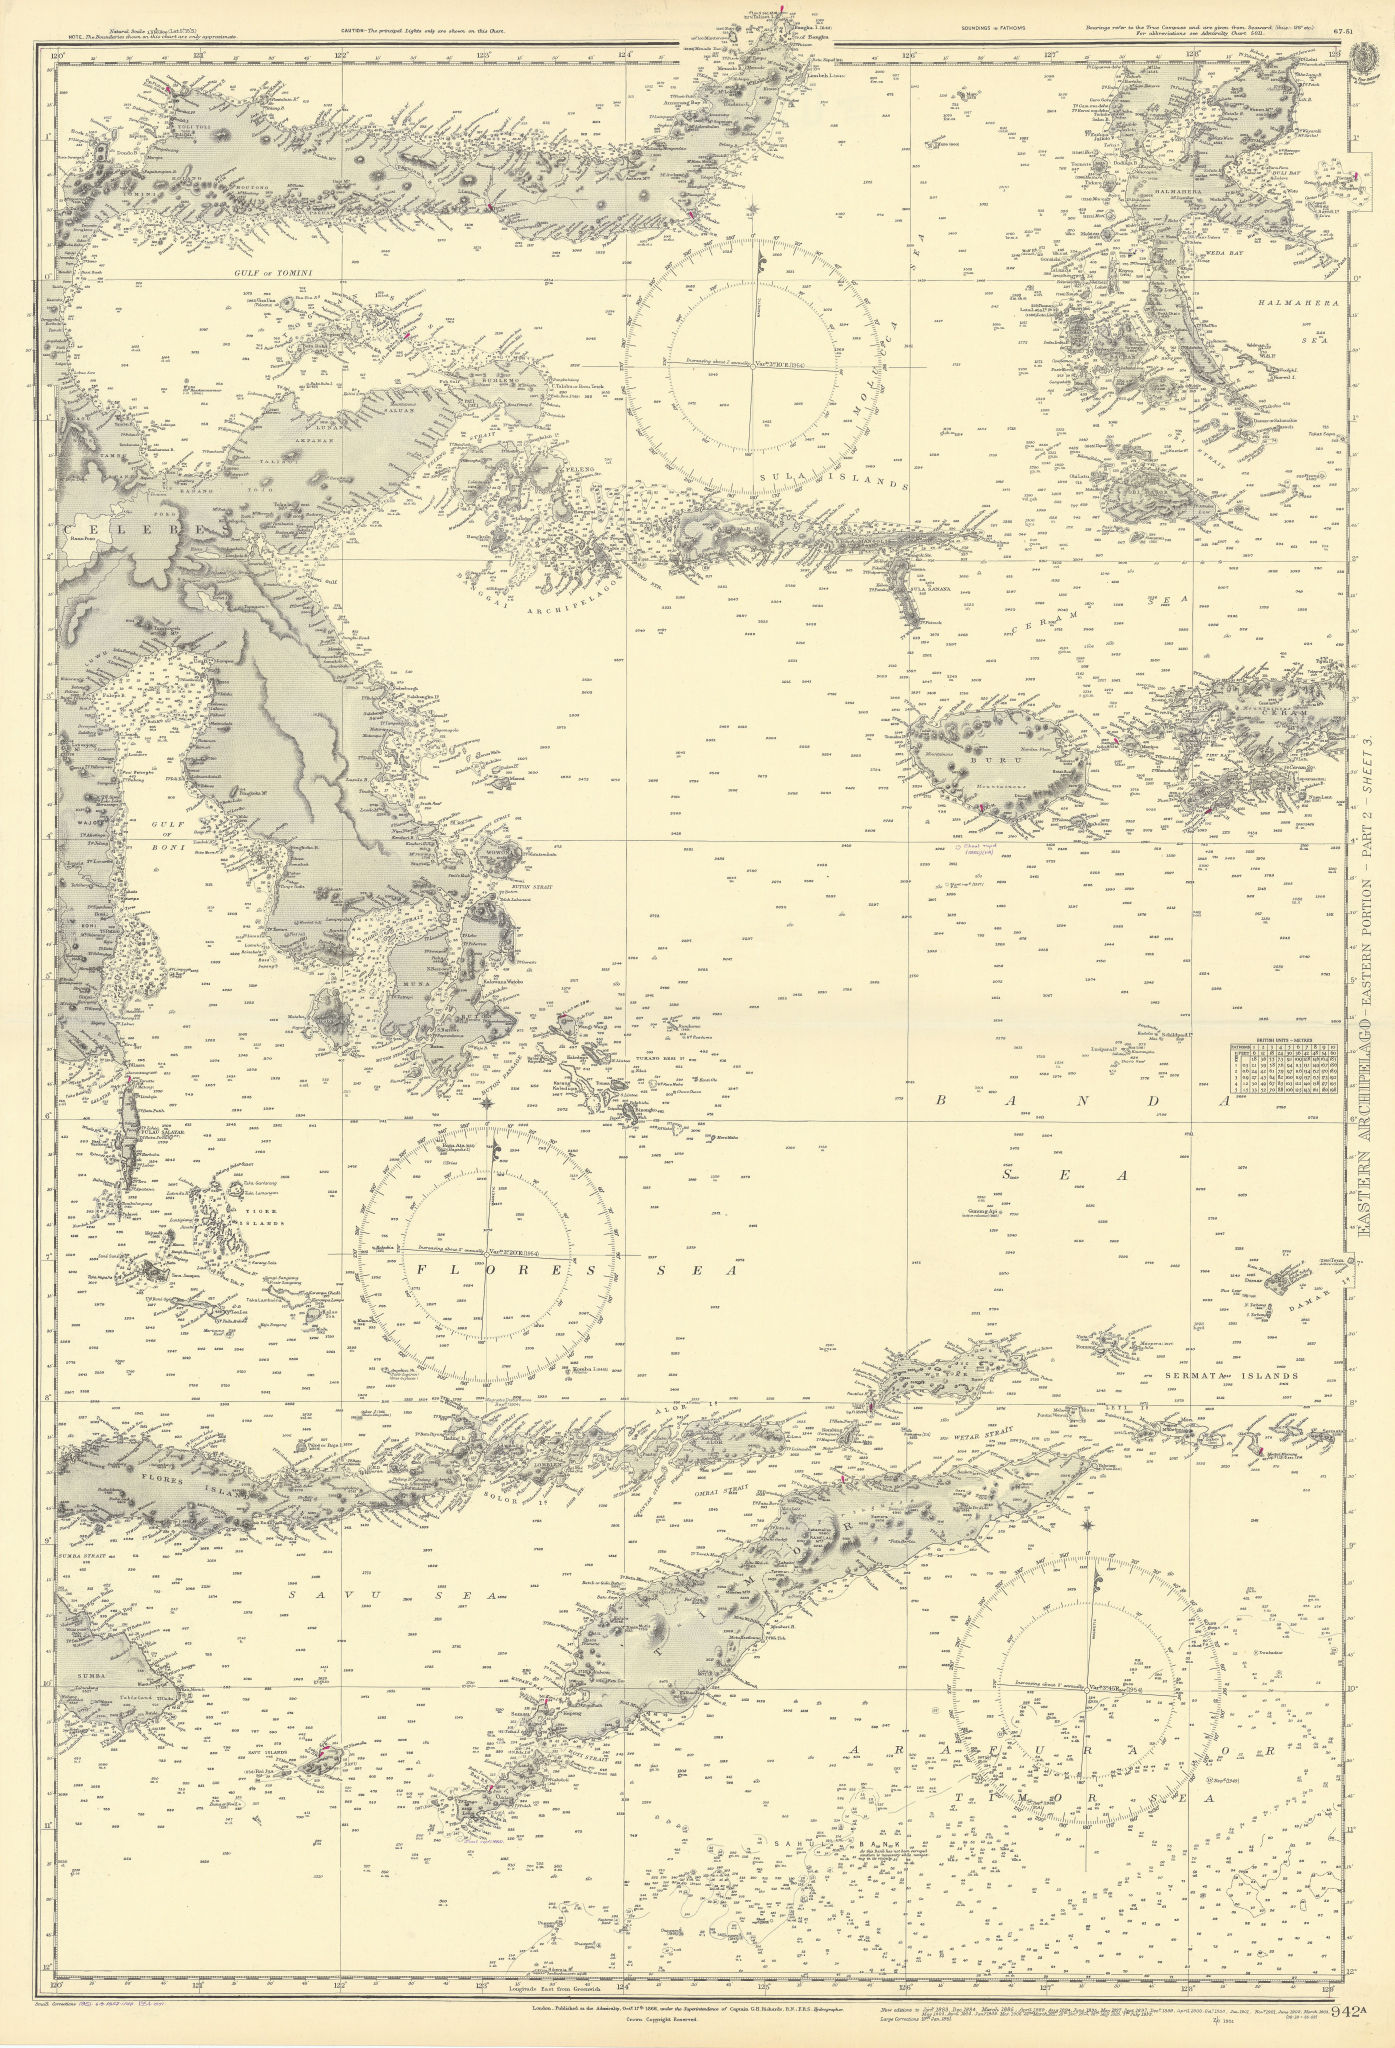 Eastern Indonesia. Timor Sulawesi Moluccas. ADMIRALTY sea chart 1868 (1954) map